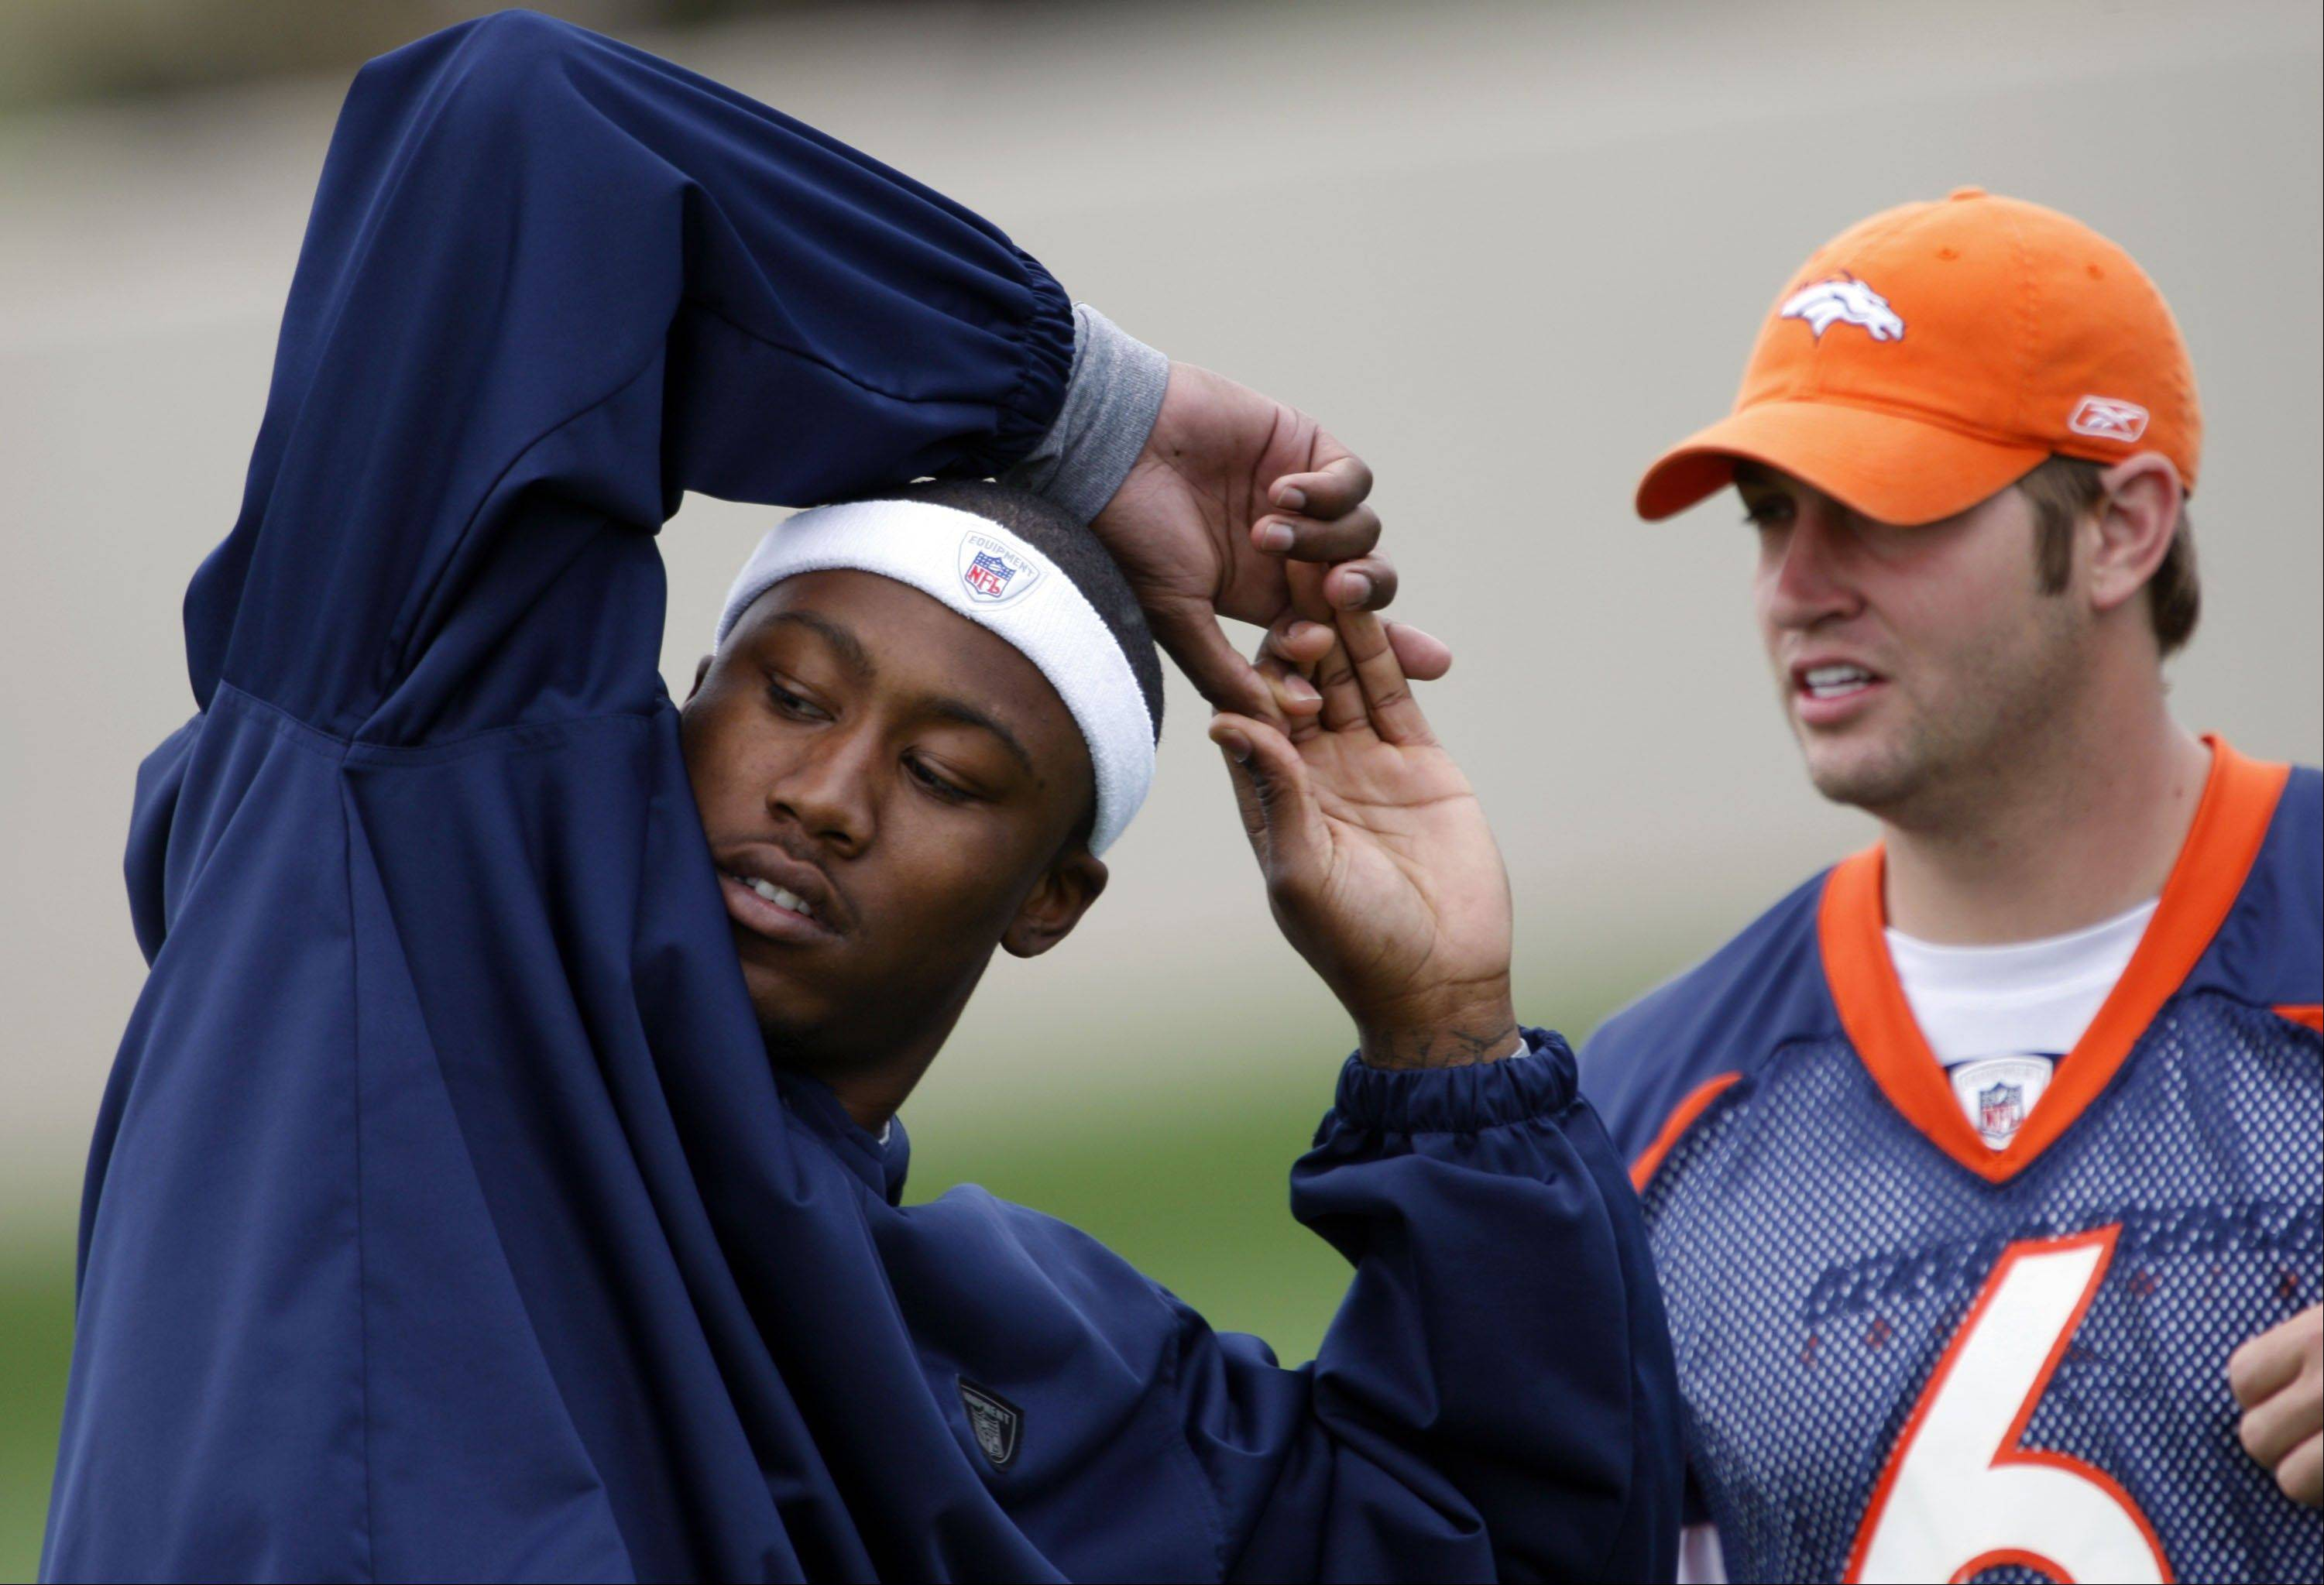 Denver Broncos injured wide receiver Brandon Marshall, left, stretches as quarterback Jay Cutler looks on before taking part in the team's quarterback camp at the Broncos headquarters in southeast Denver on Wednesday, May 21, 2008.